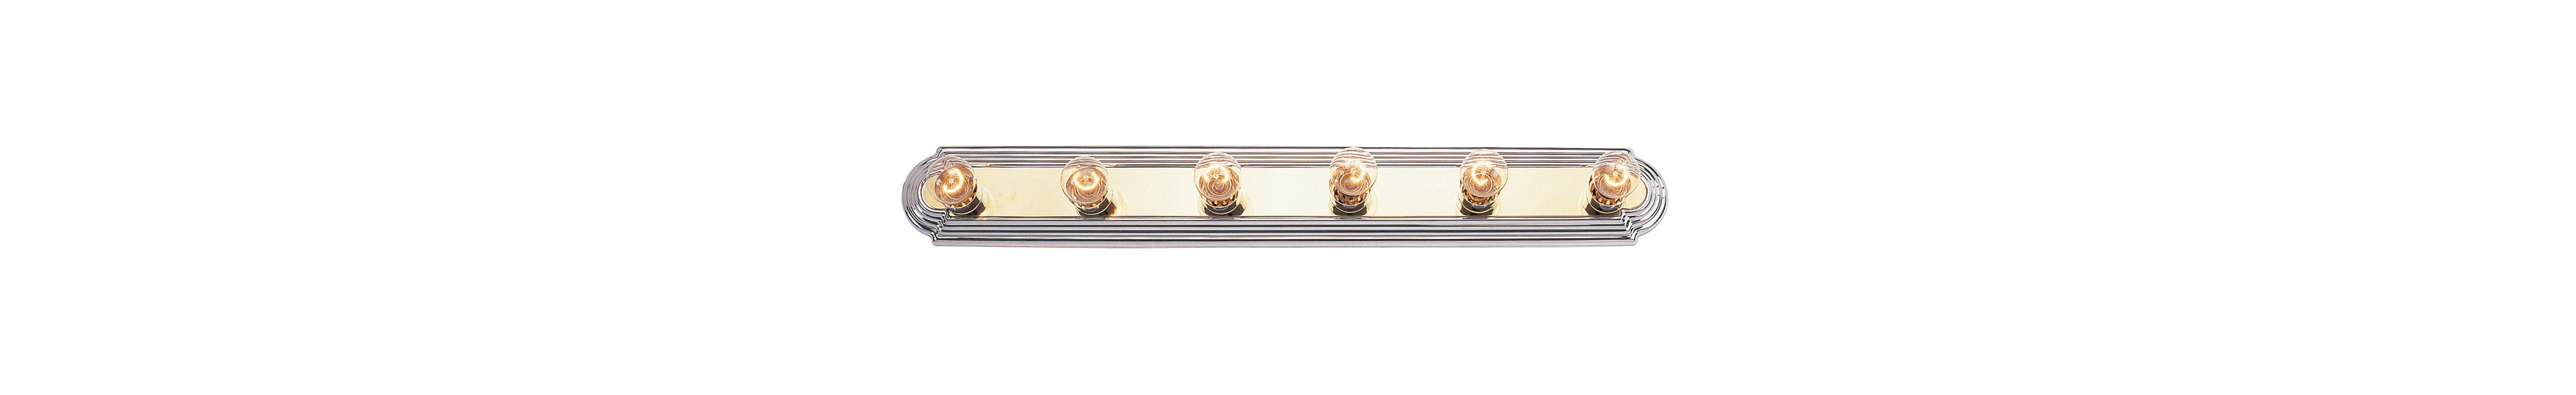 Livex Lighting 1146 Bath Basics 6 Light Bathroom Vanity Light